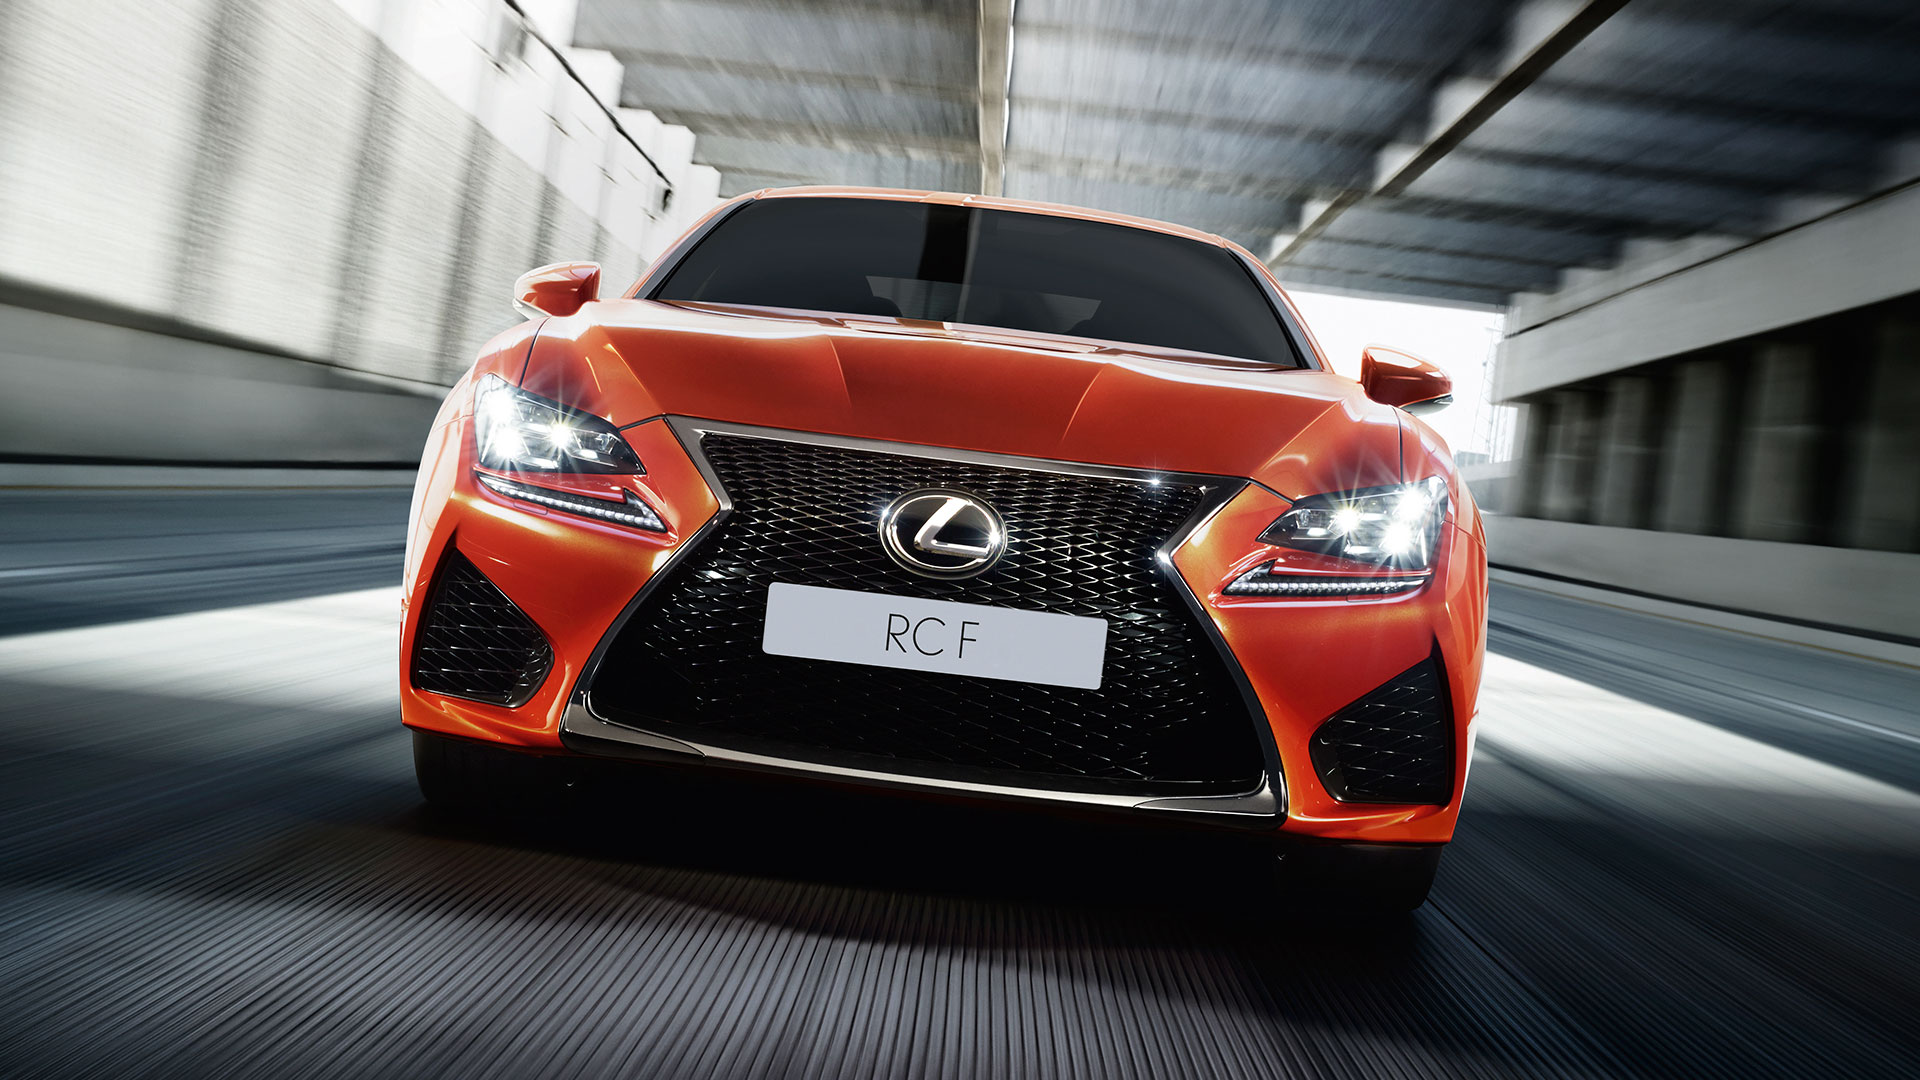 2017 lexus rc f features led headlights